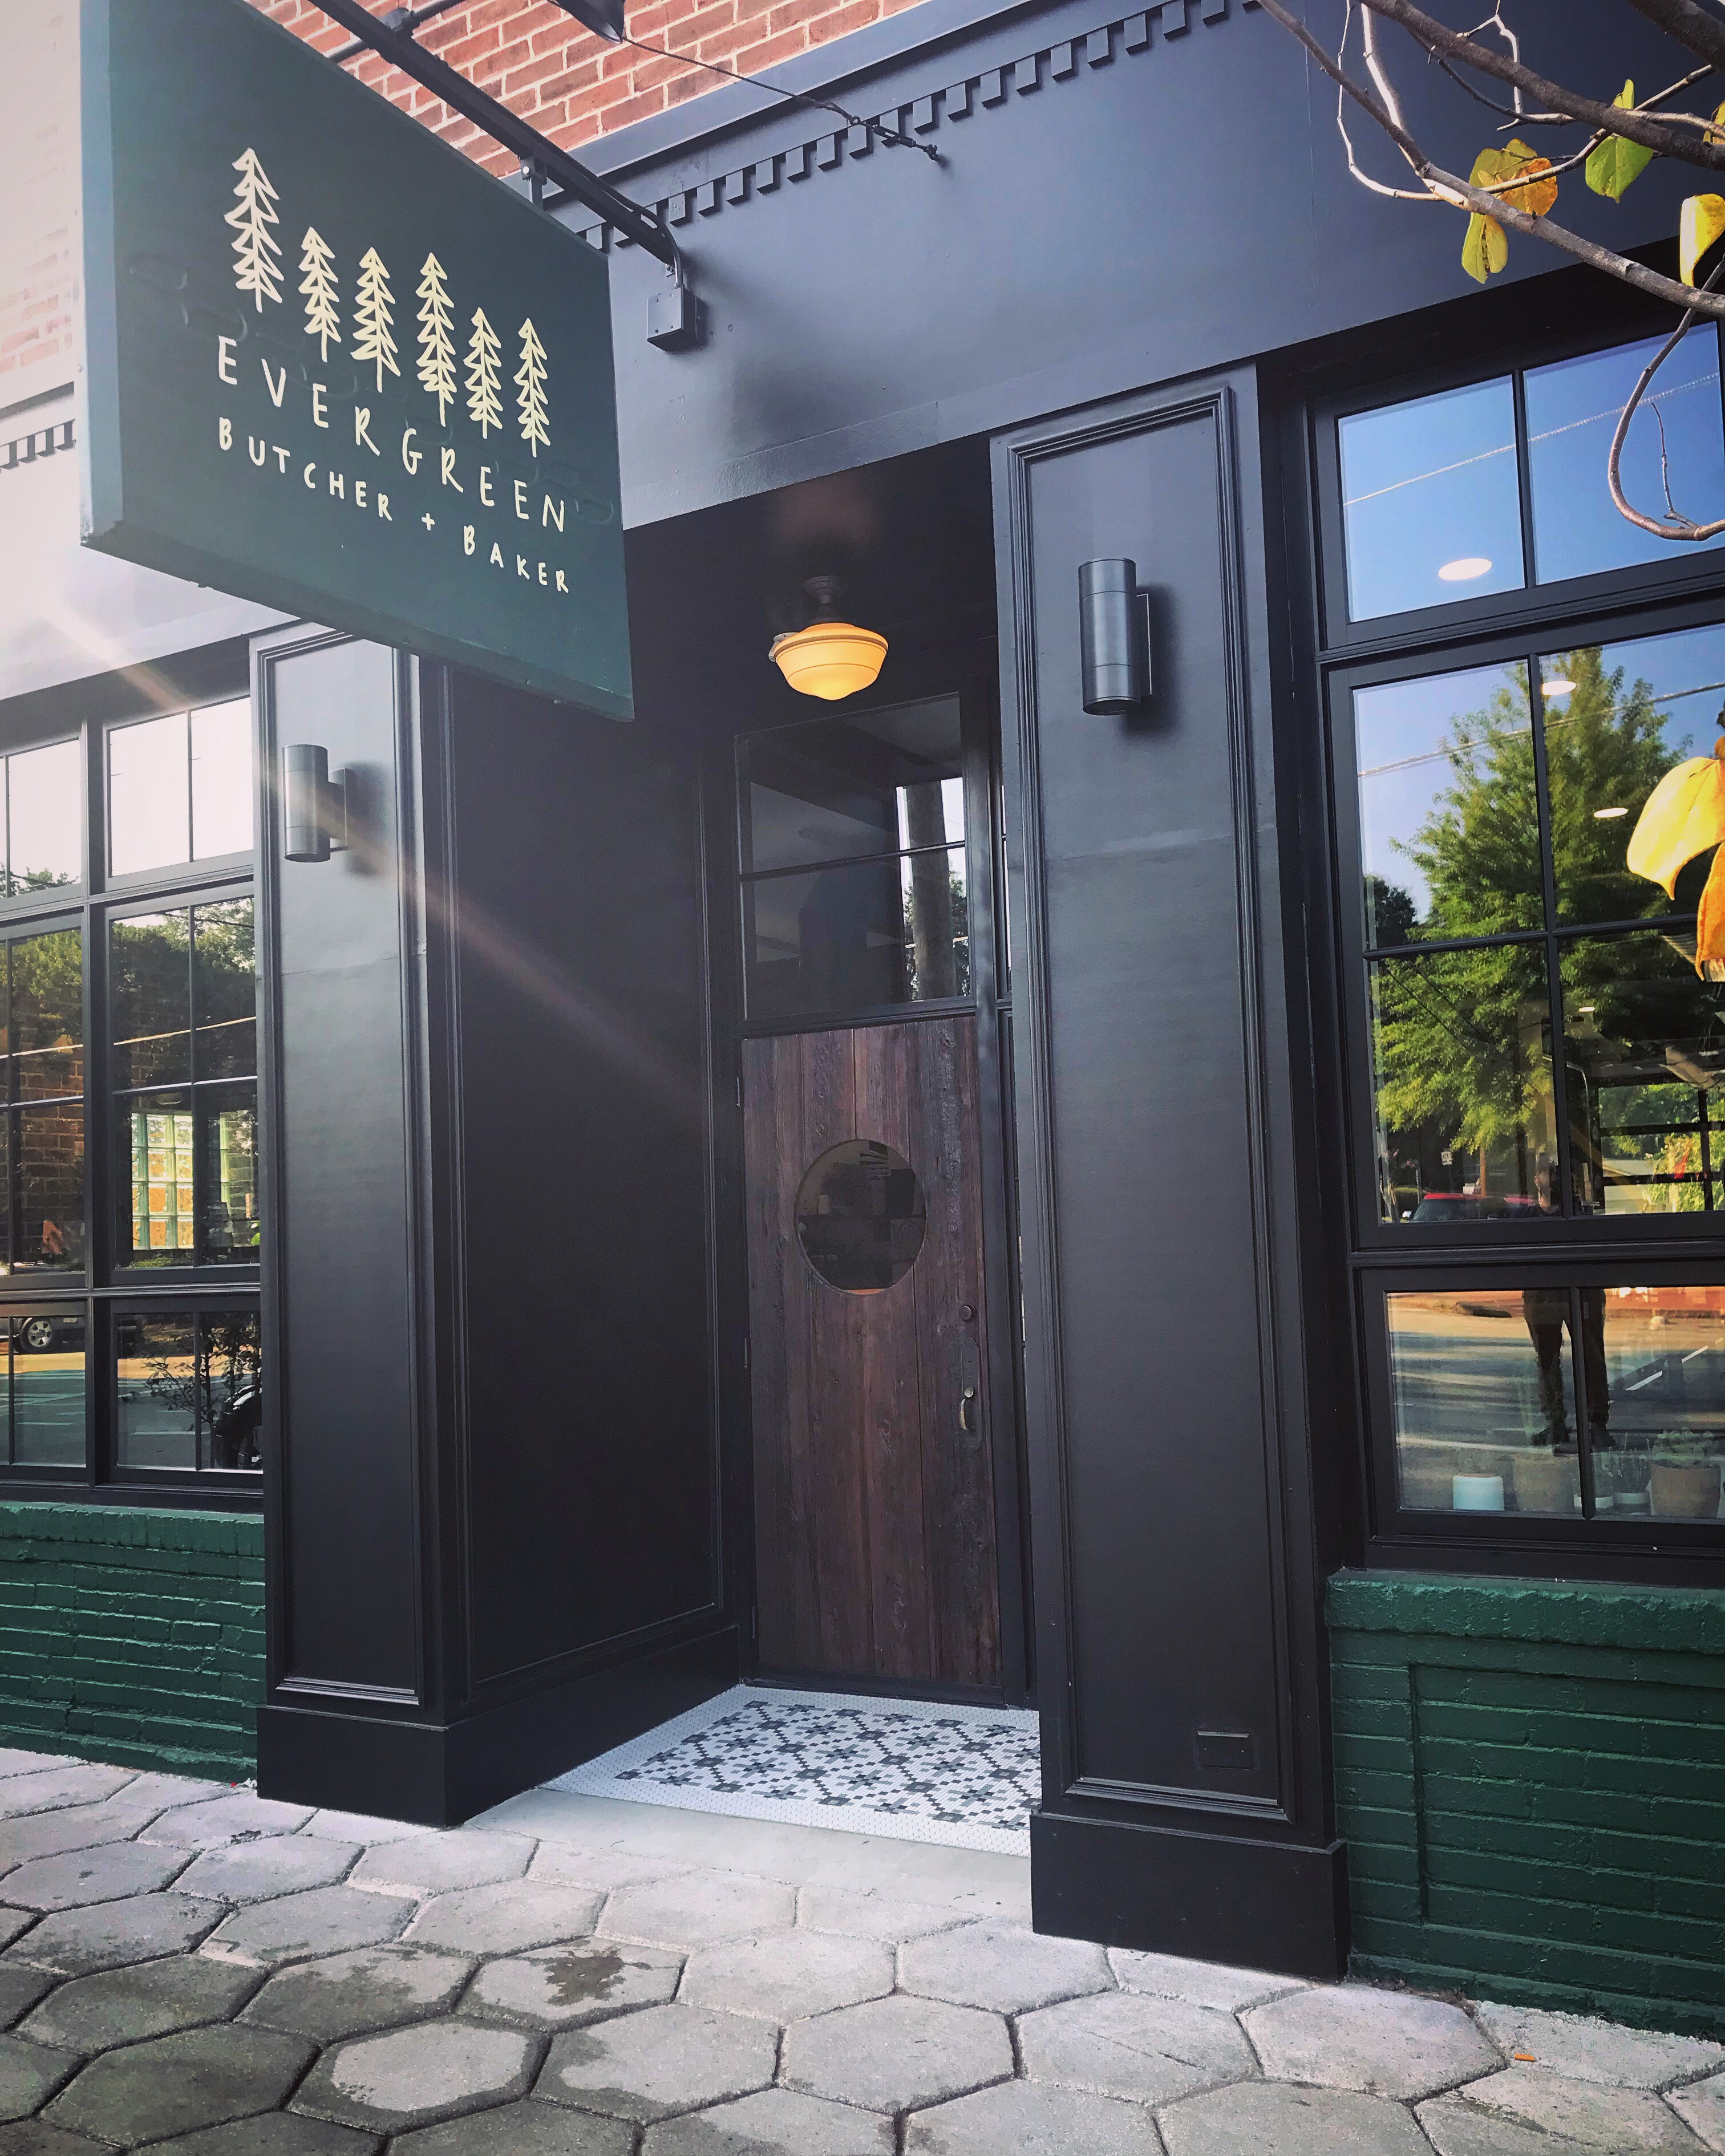 The green and black exterior entrance with sign hanging above the front door